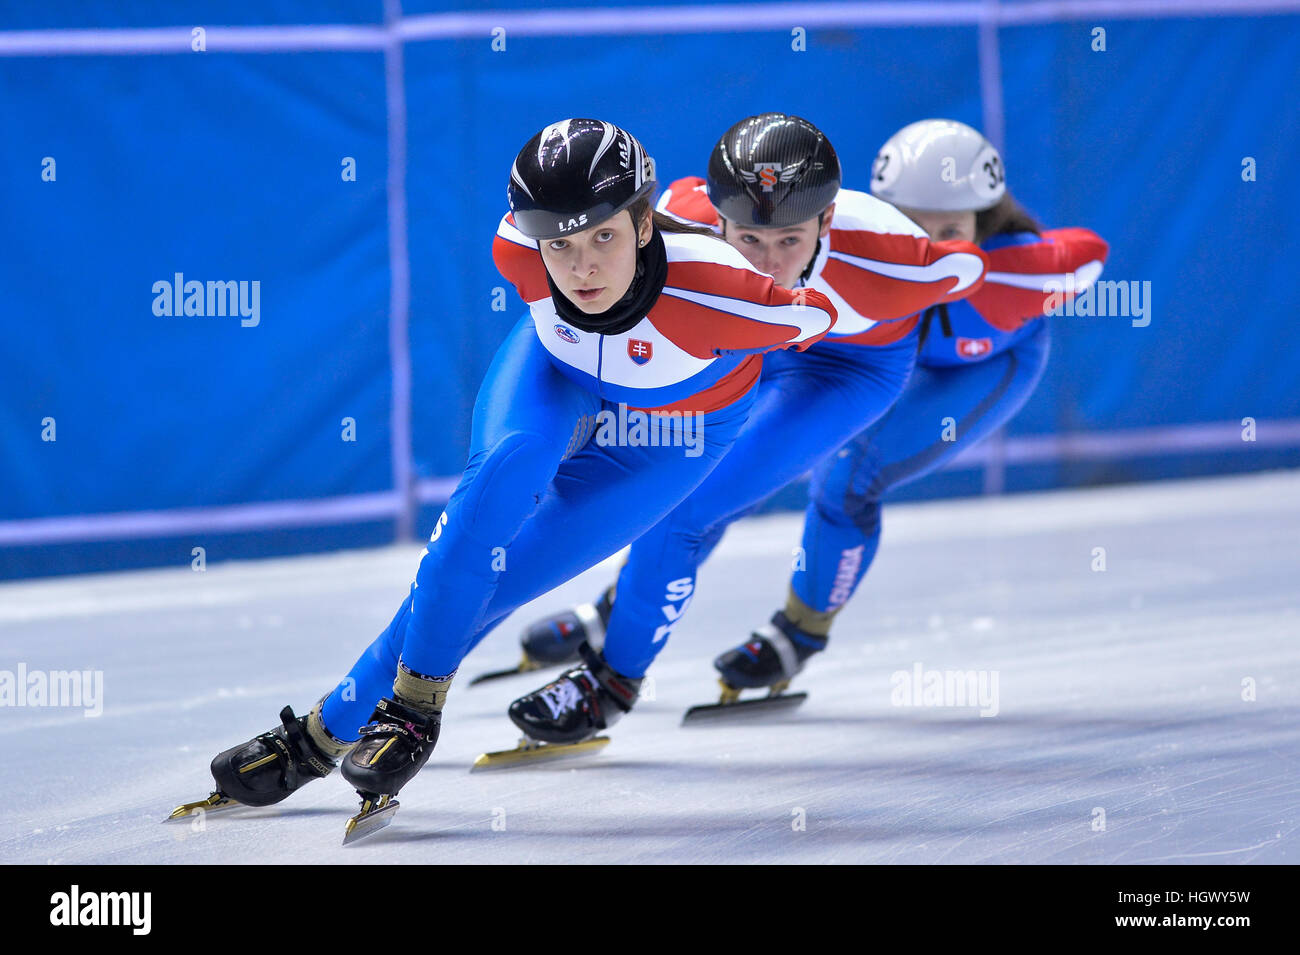 Torino, Italie. 12 Jan, 2017. Sandra Trusova en action au cours de l'entraînement pour la Slovaquie National Photo Stock